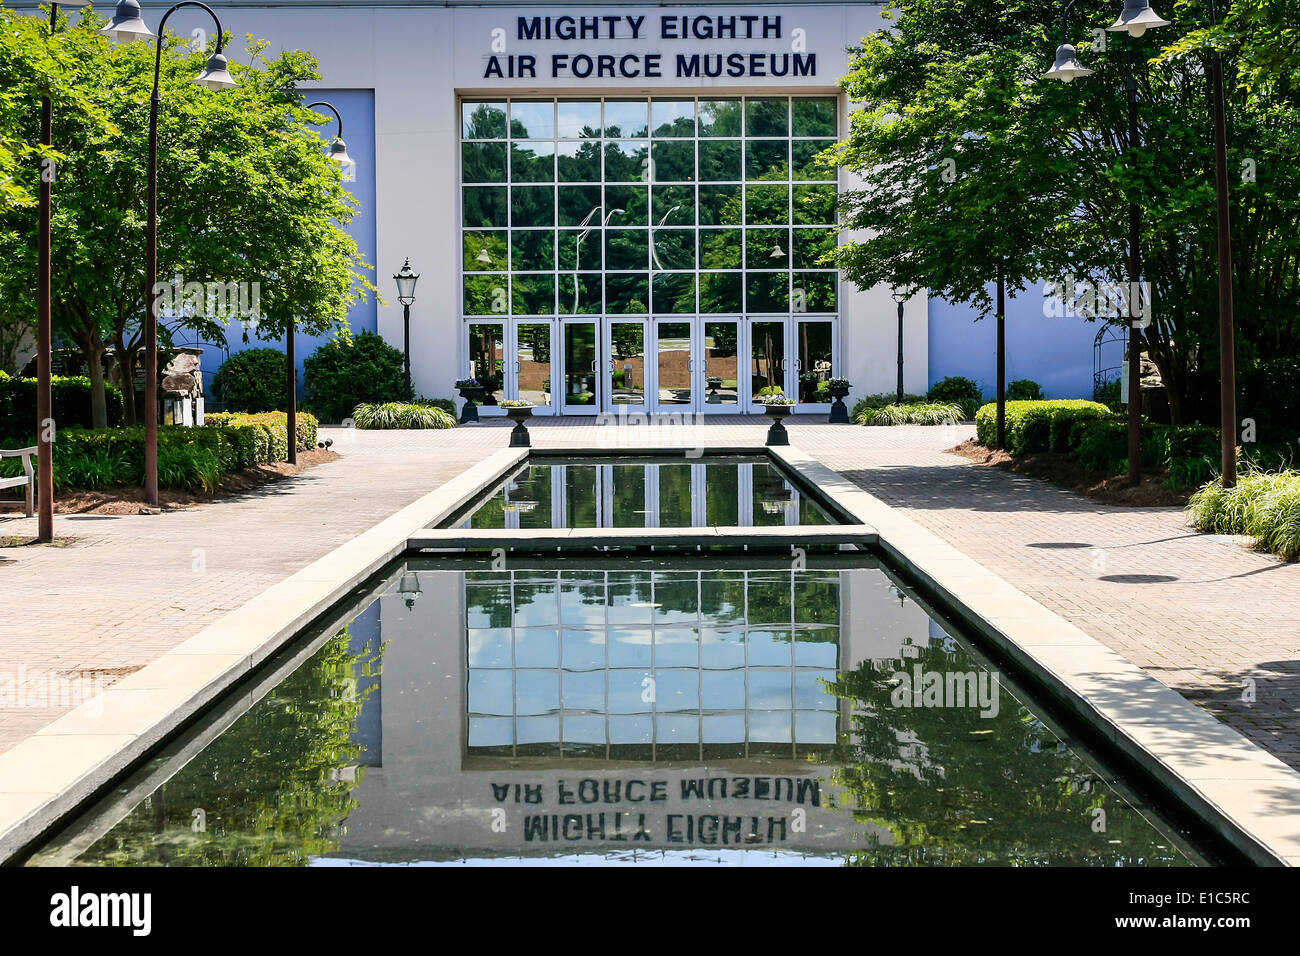 The Mighty Eighth Air Force Museum at Pooler GA - Stock Image